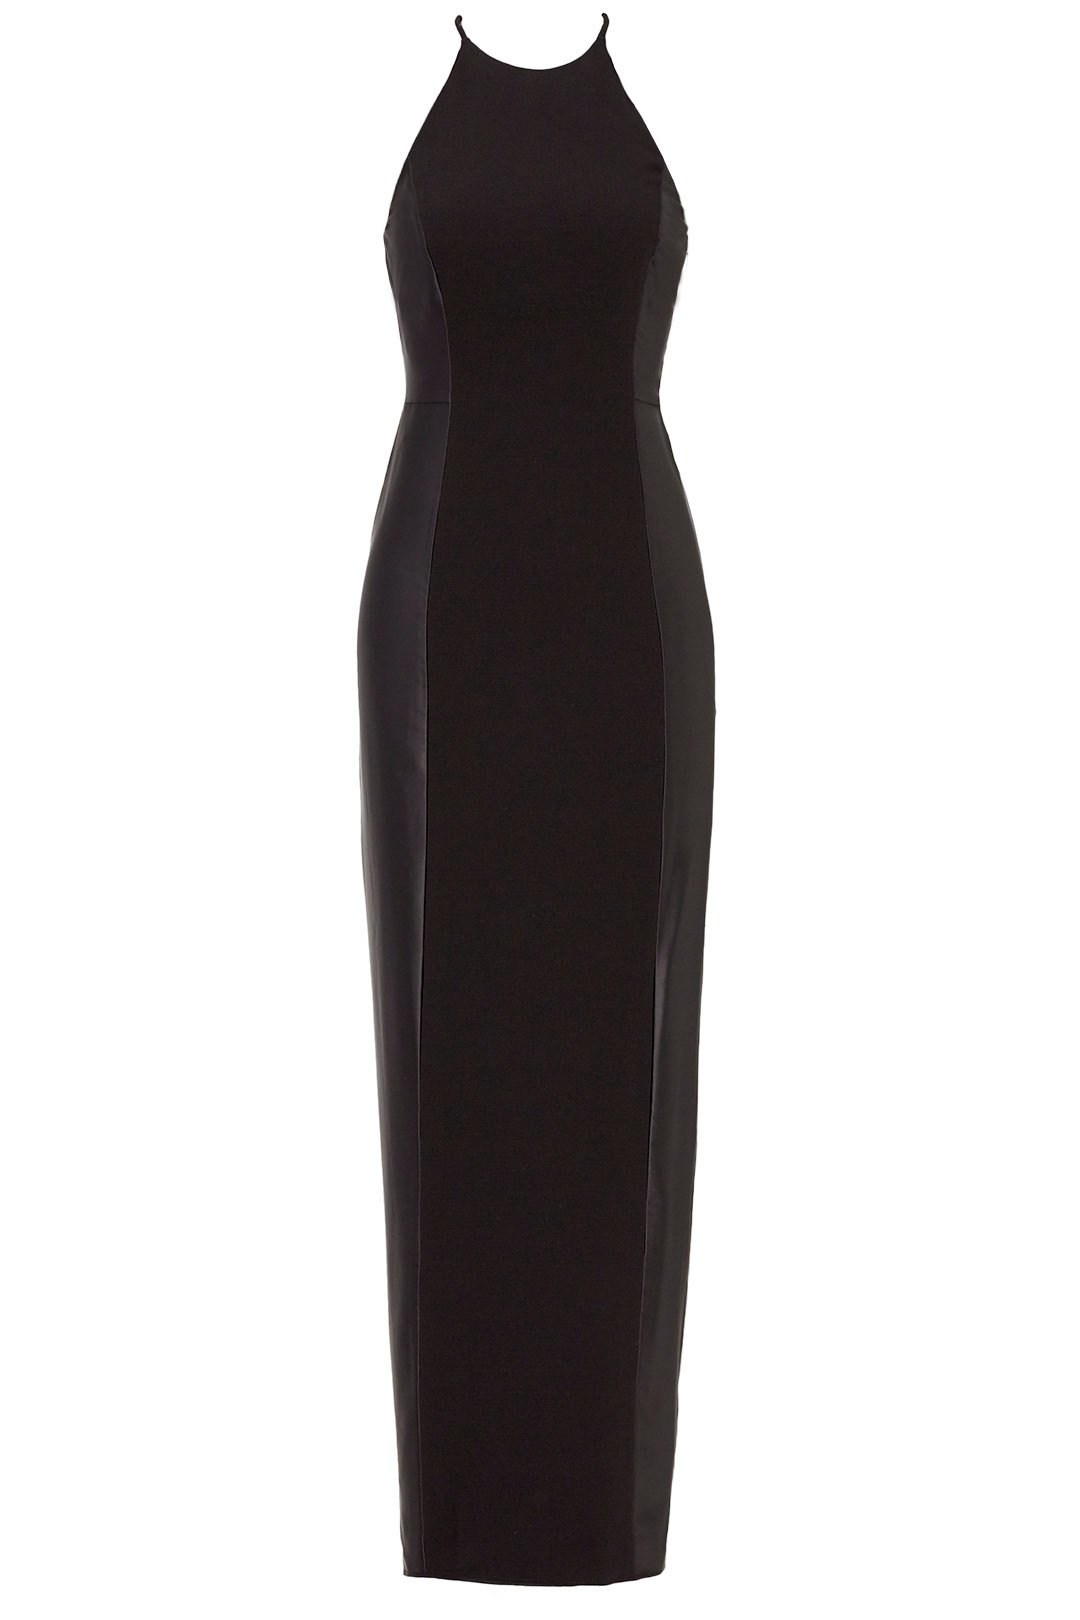 252286ed7fdc8 Details about Halston Heritage Black Women's Size 10 Gown Crepe Halter Prom  Dress $525- #464